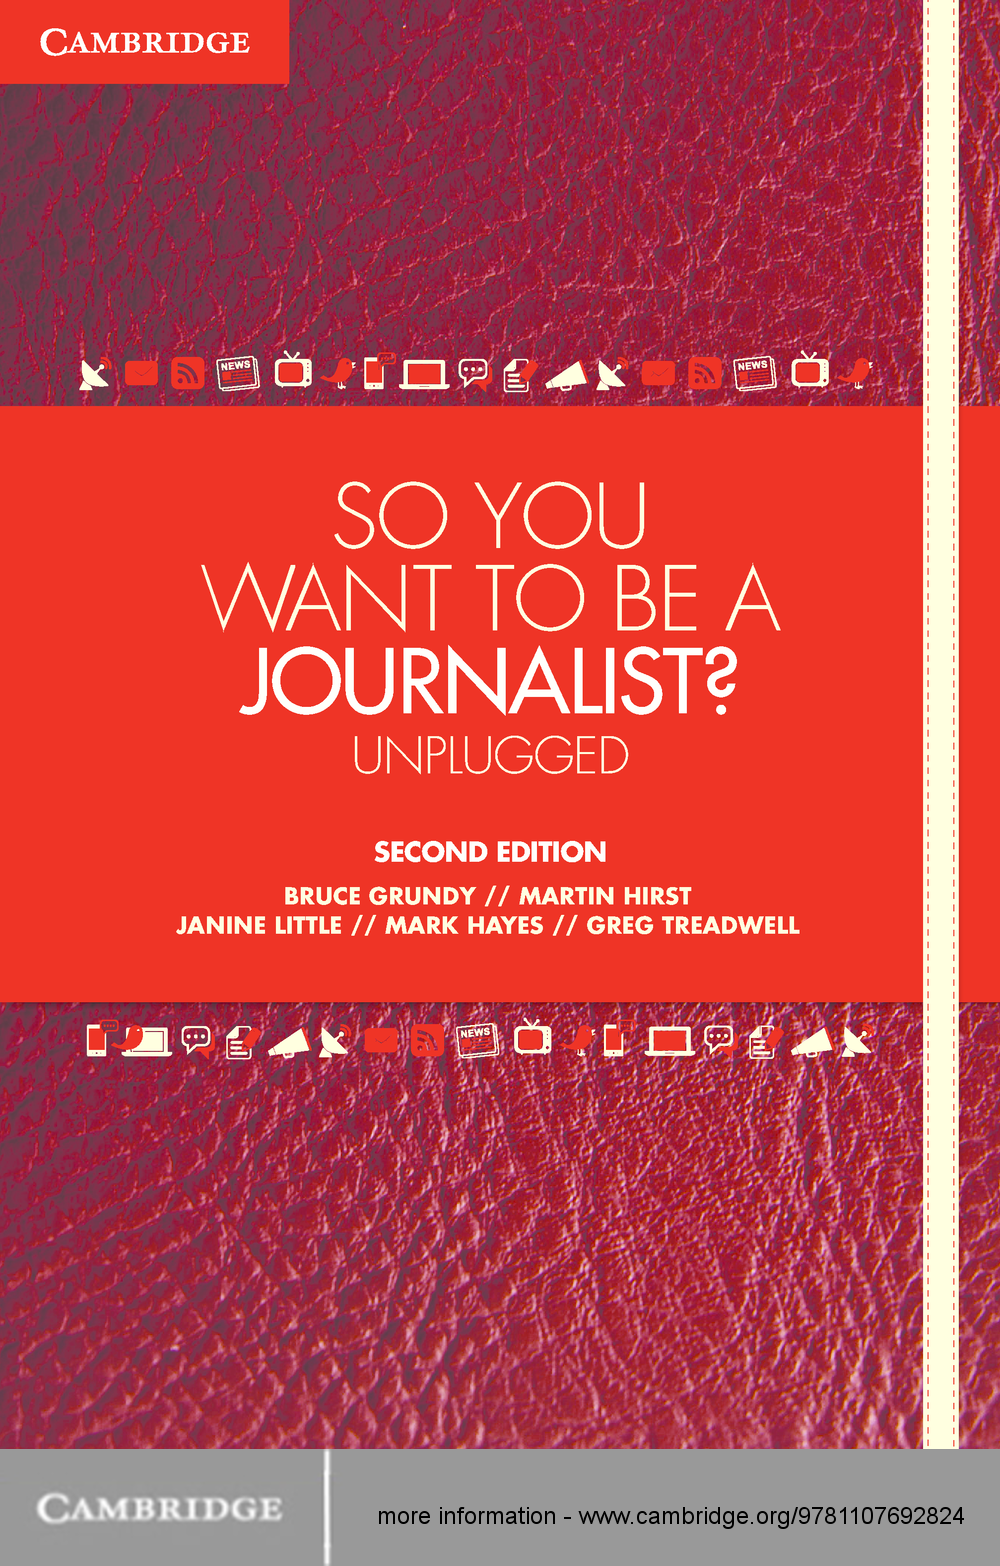 So You Want To Be A Journalist? Unplugged